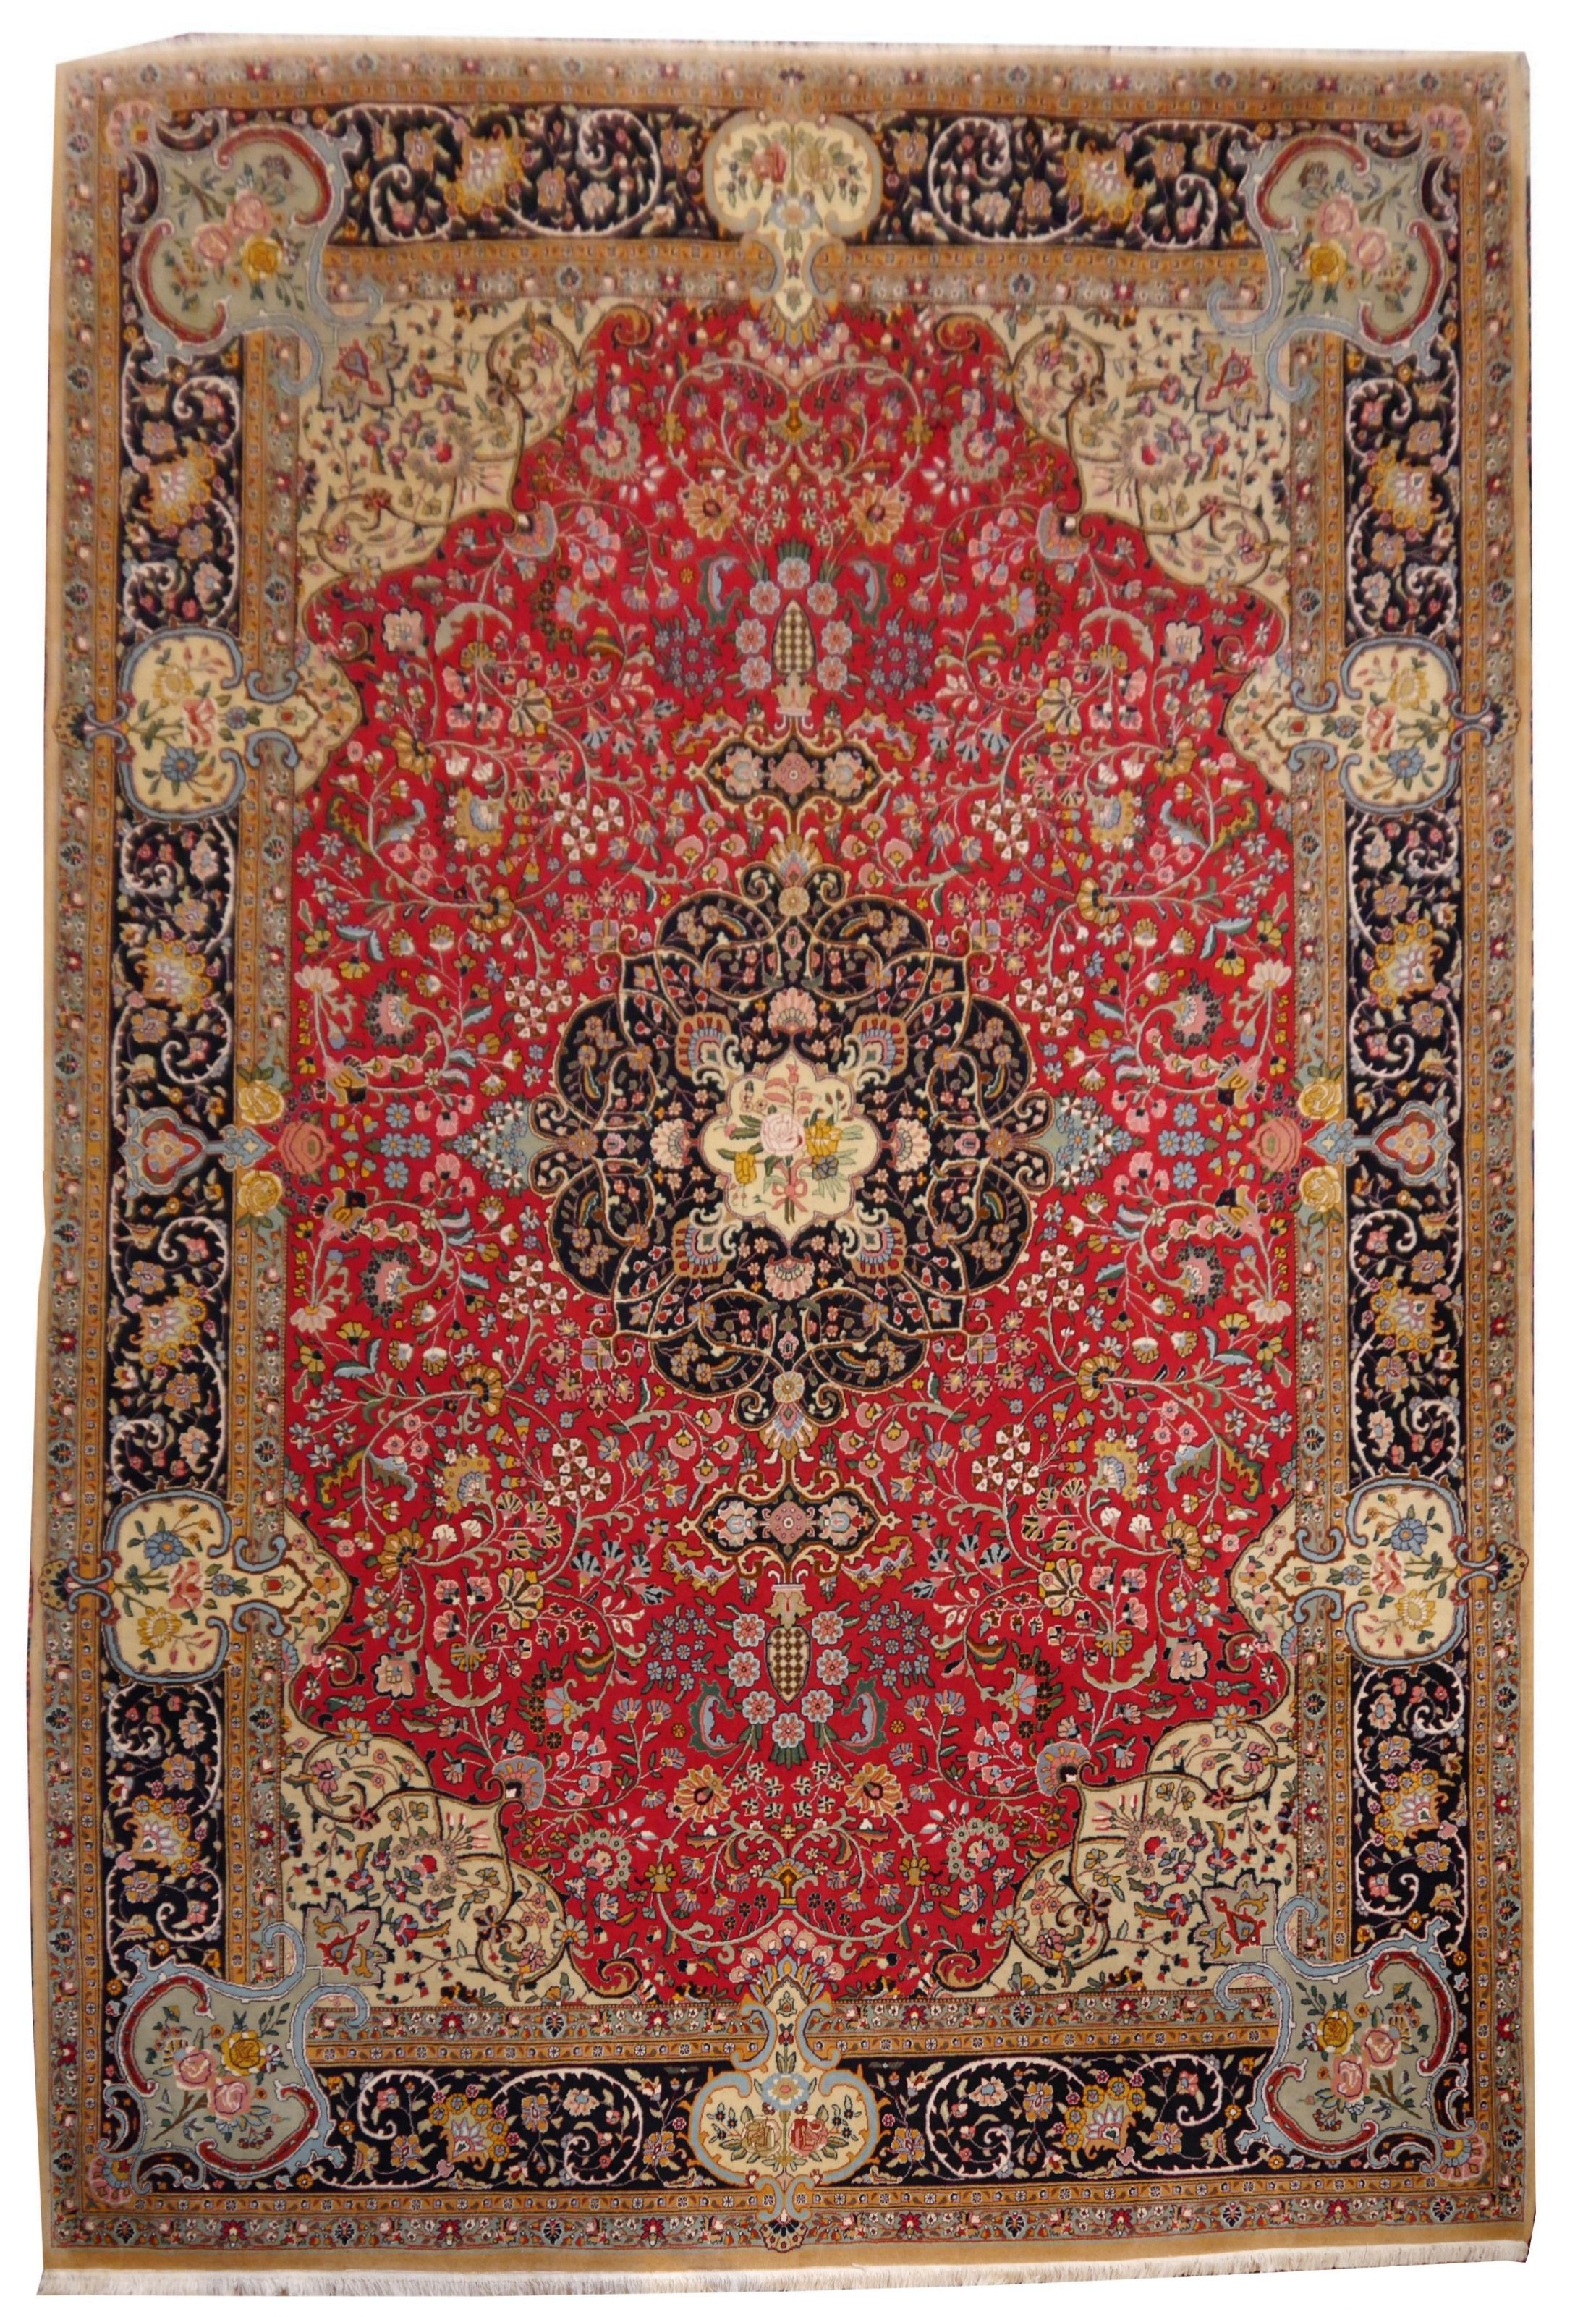 Berber Teppich Alt 13825 Tabriz Rug China 11 5 X 8 2 Ft 350 X 250 Cm The Rug